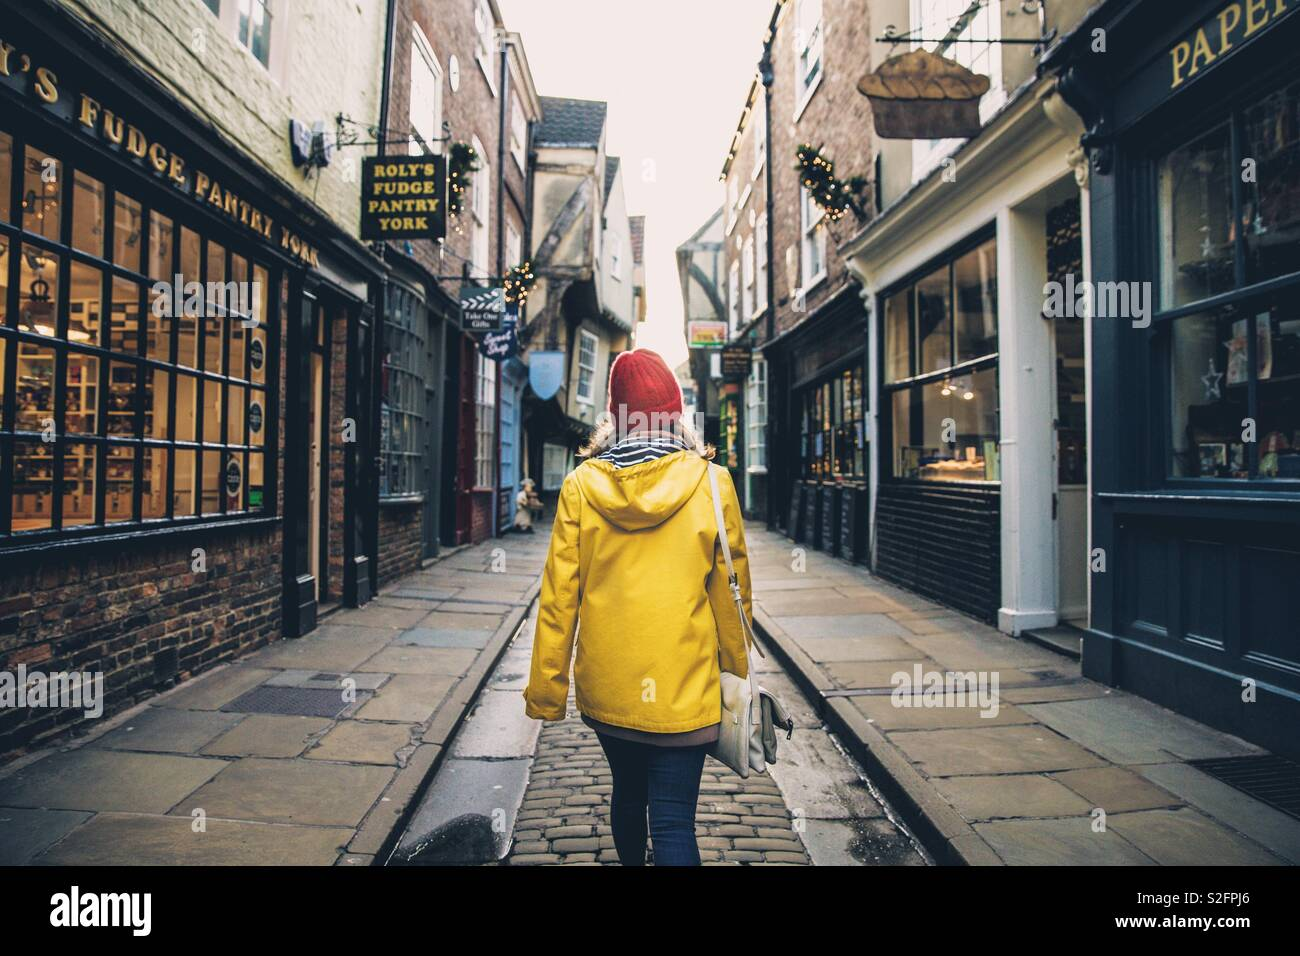 A rear view of a fashionable young girl wearing a yellow coat and walking along a medieval and historic shopping street known as the Shambles in York, UK - Stock Image